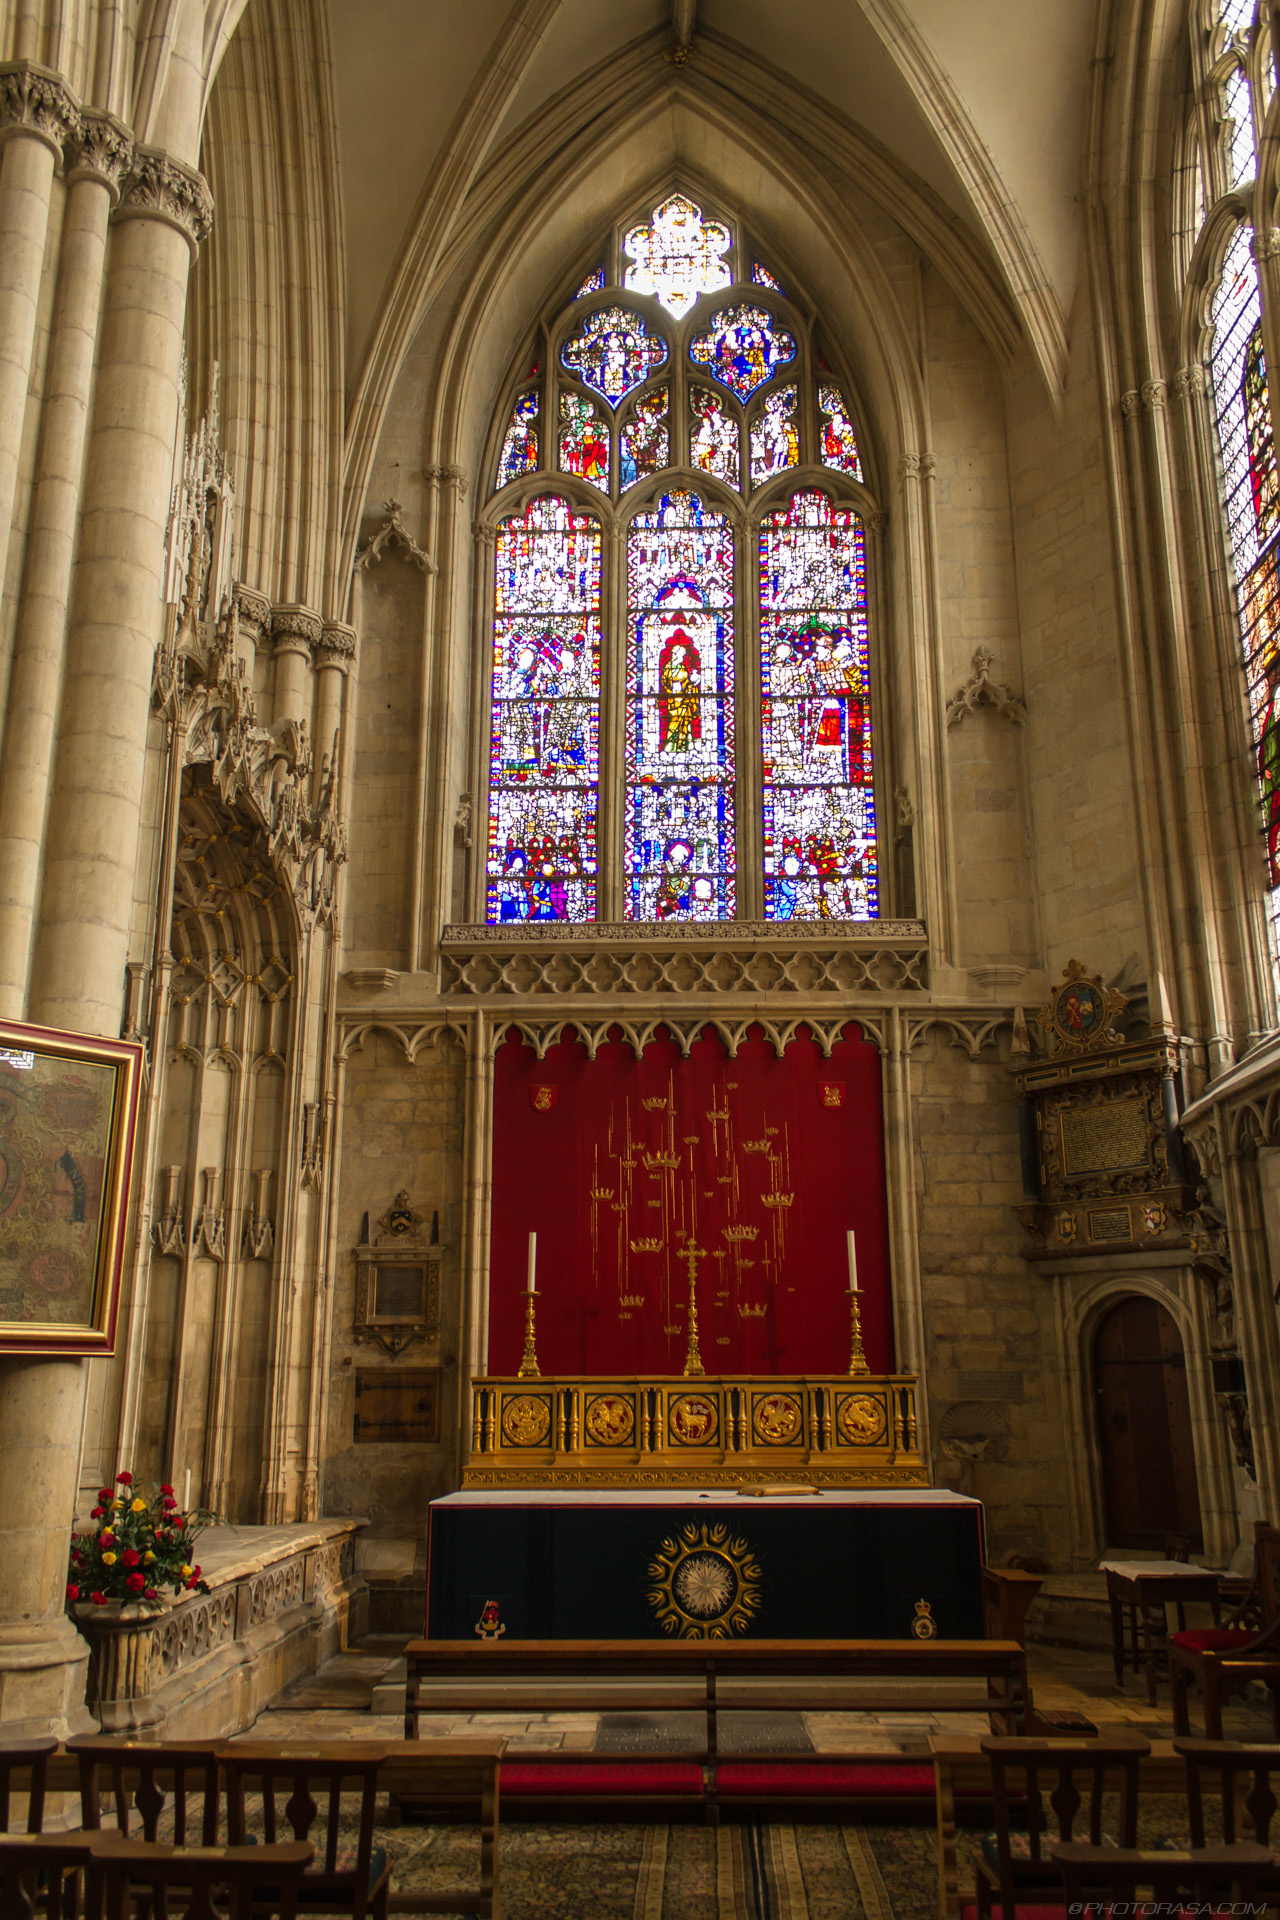 https://photorasa.com/yorkminster-cathedral/all-saints-chapel/